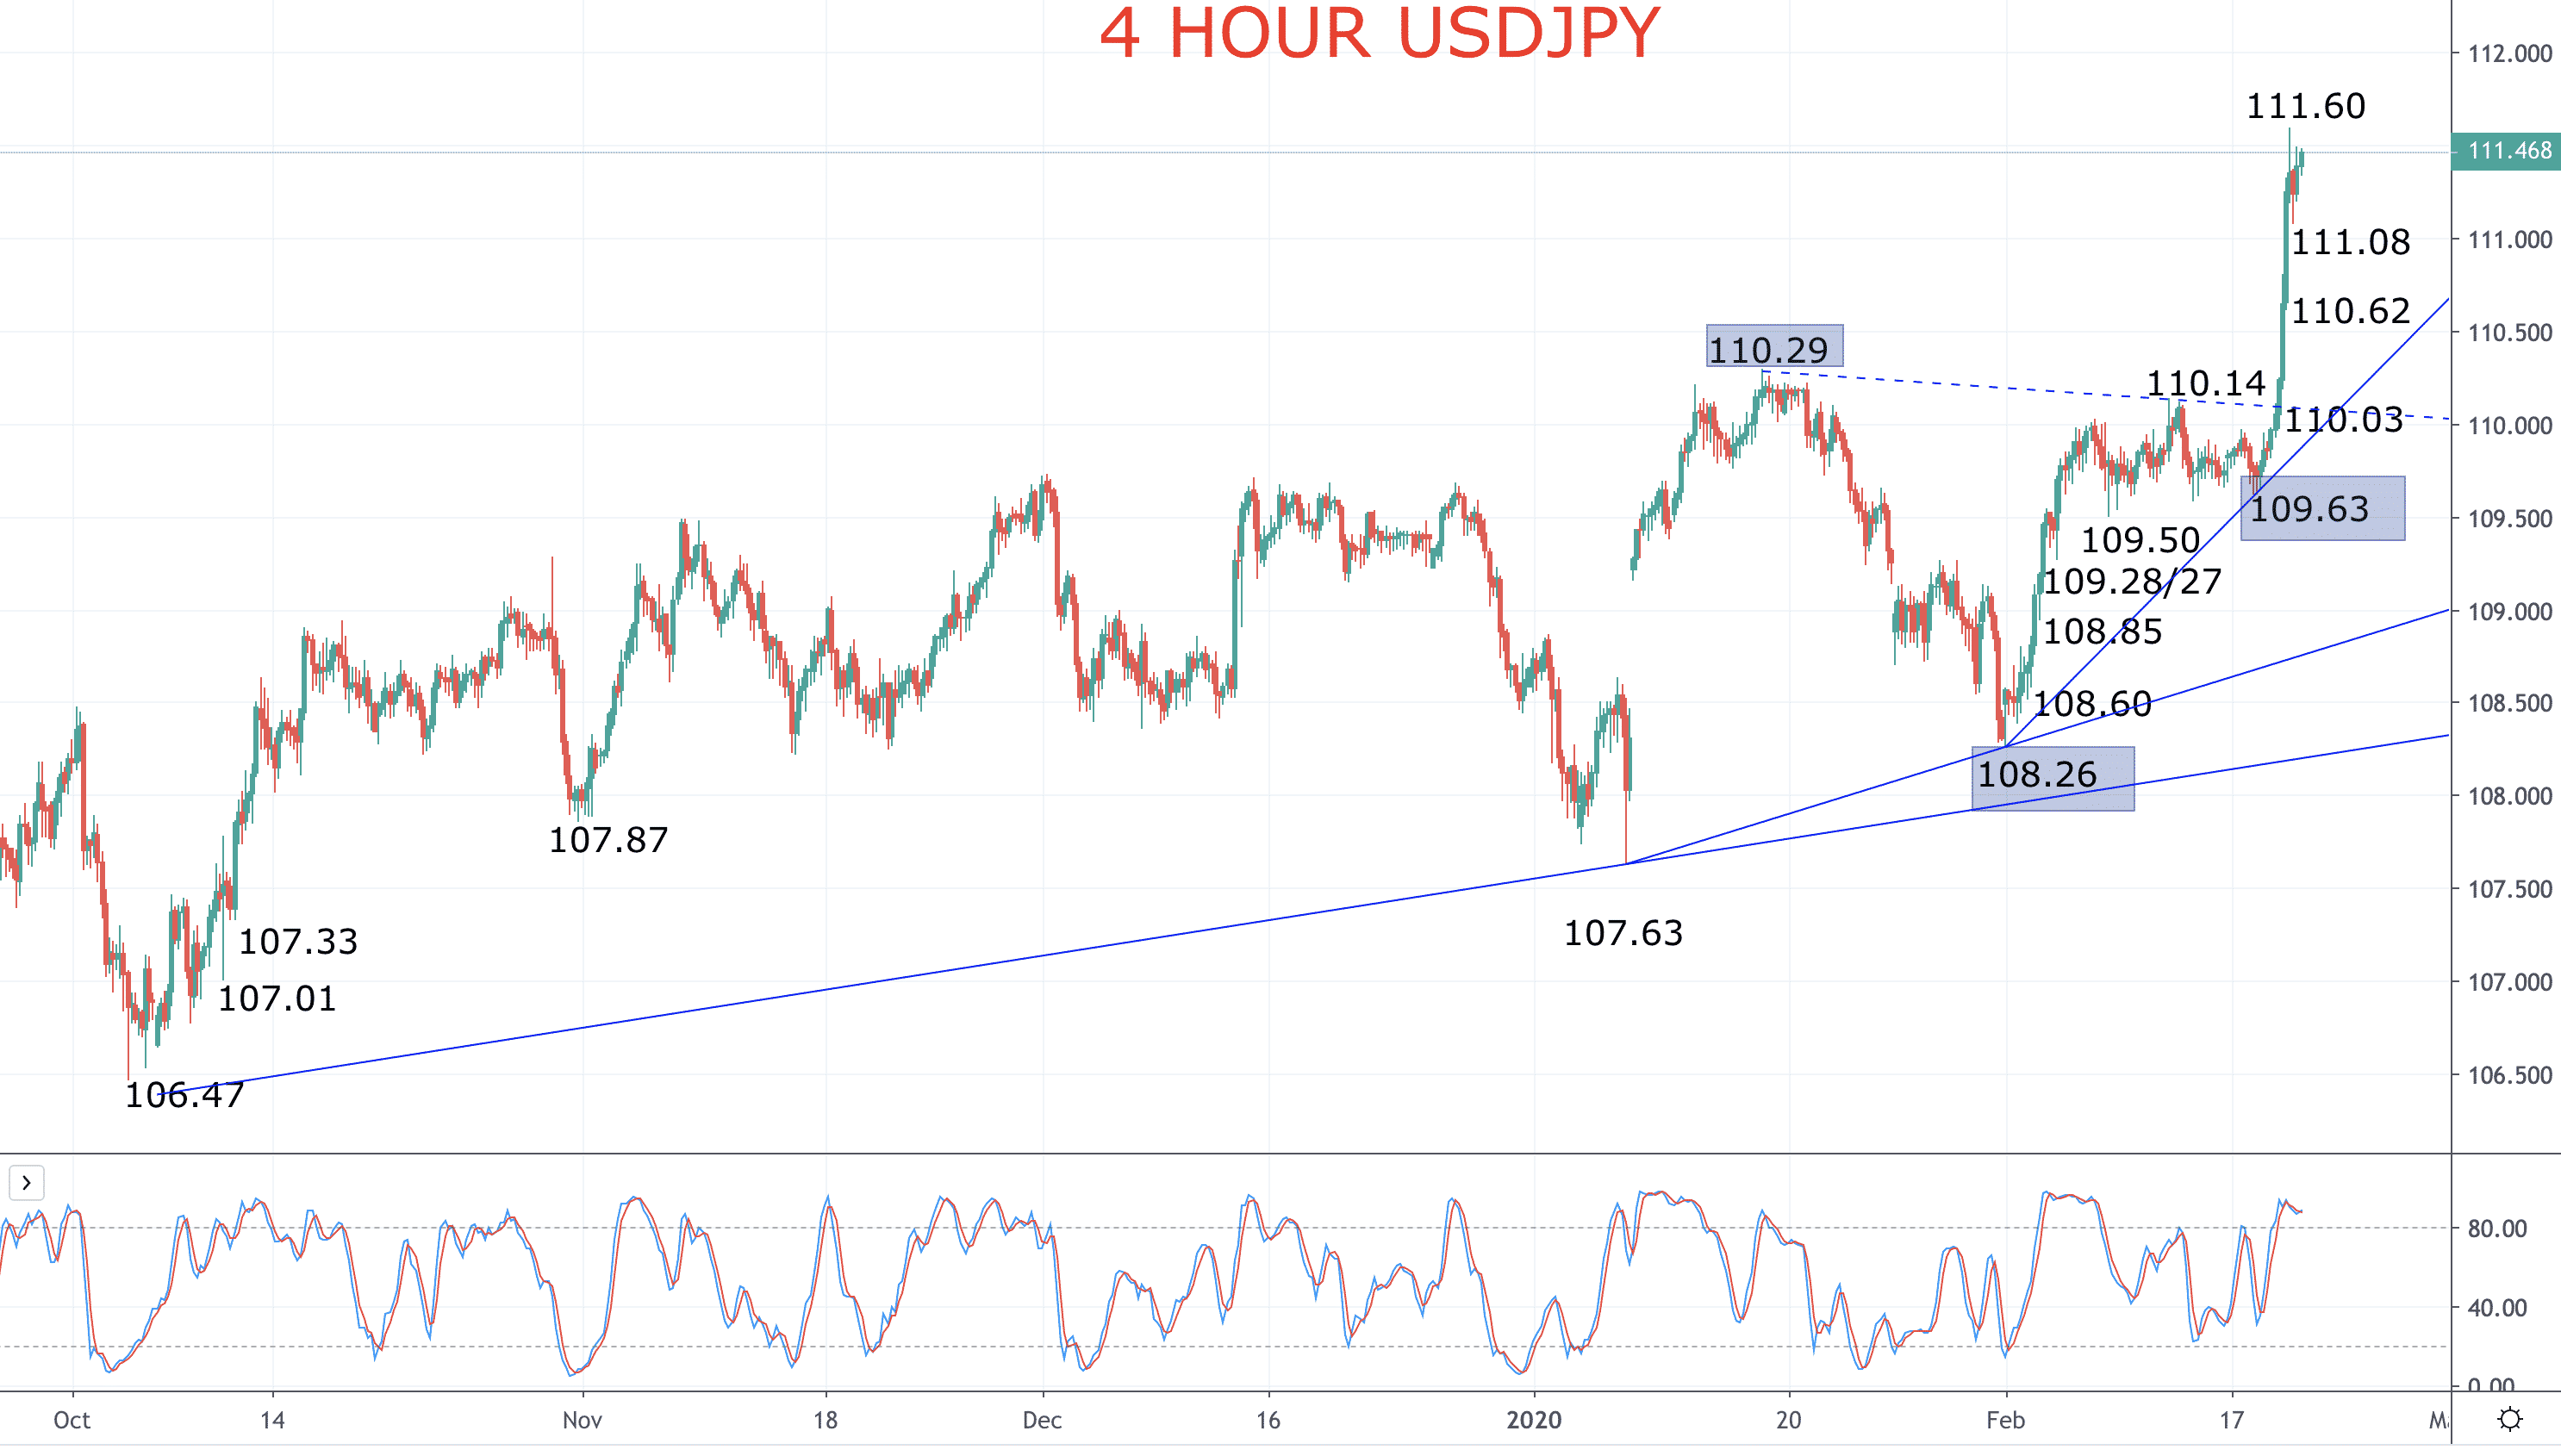 US Dollar is King as USDJPY surges (USDJPY forecast) Image